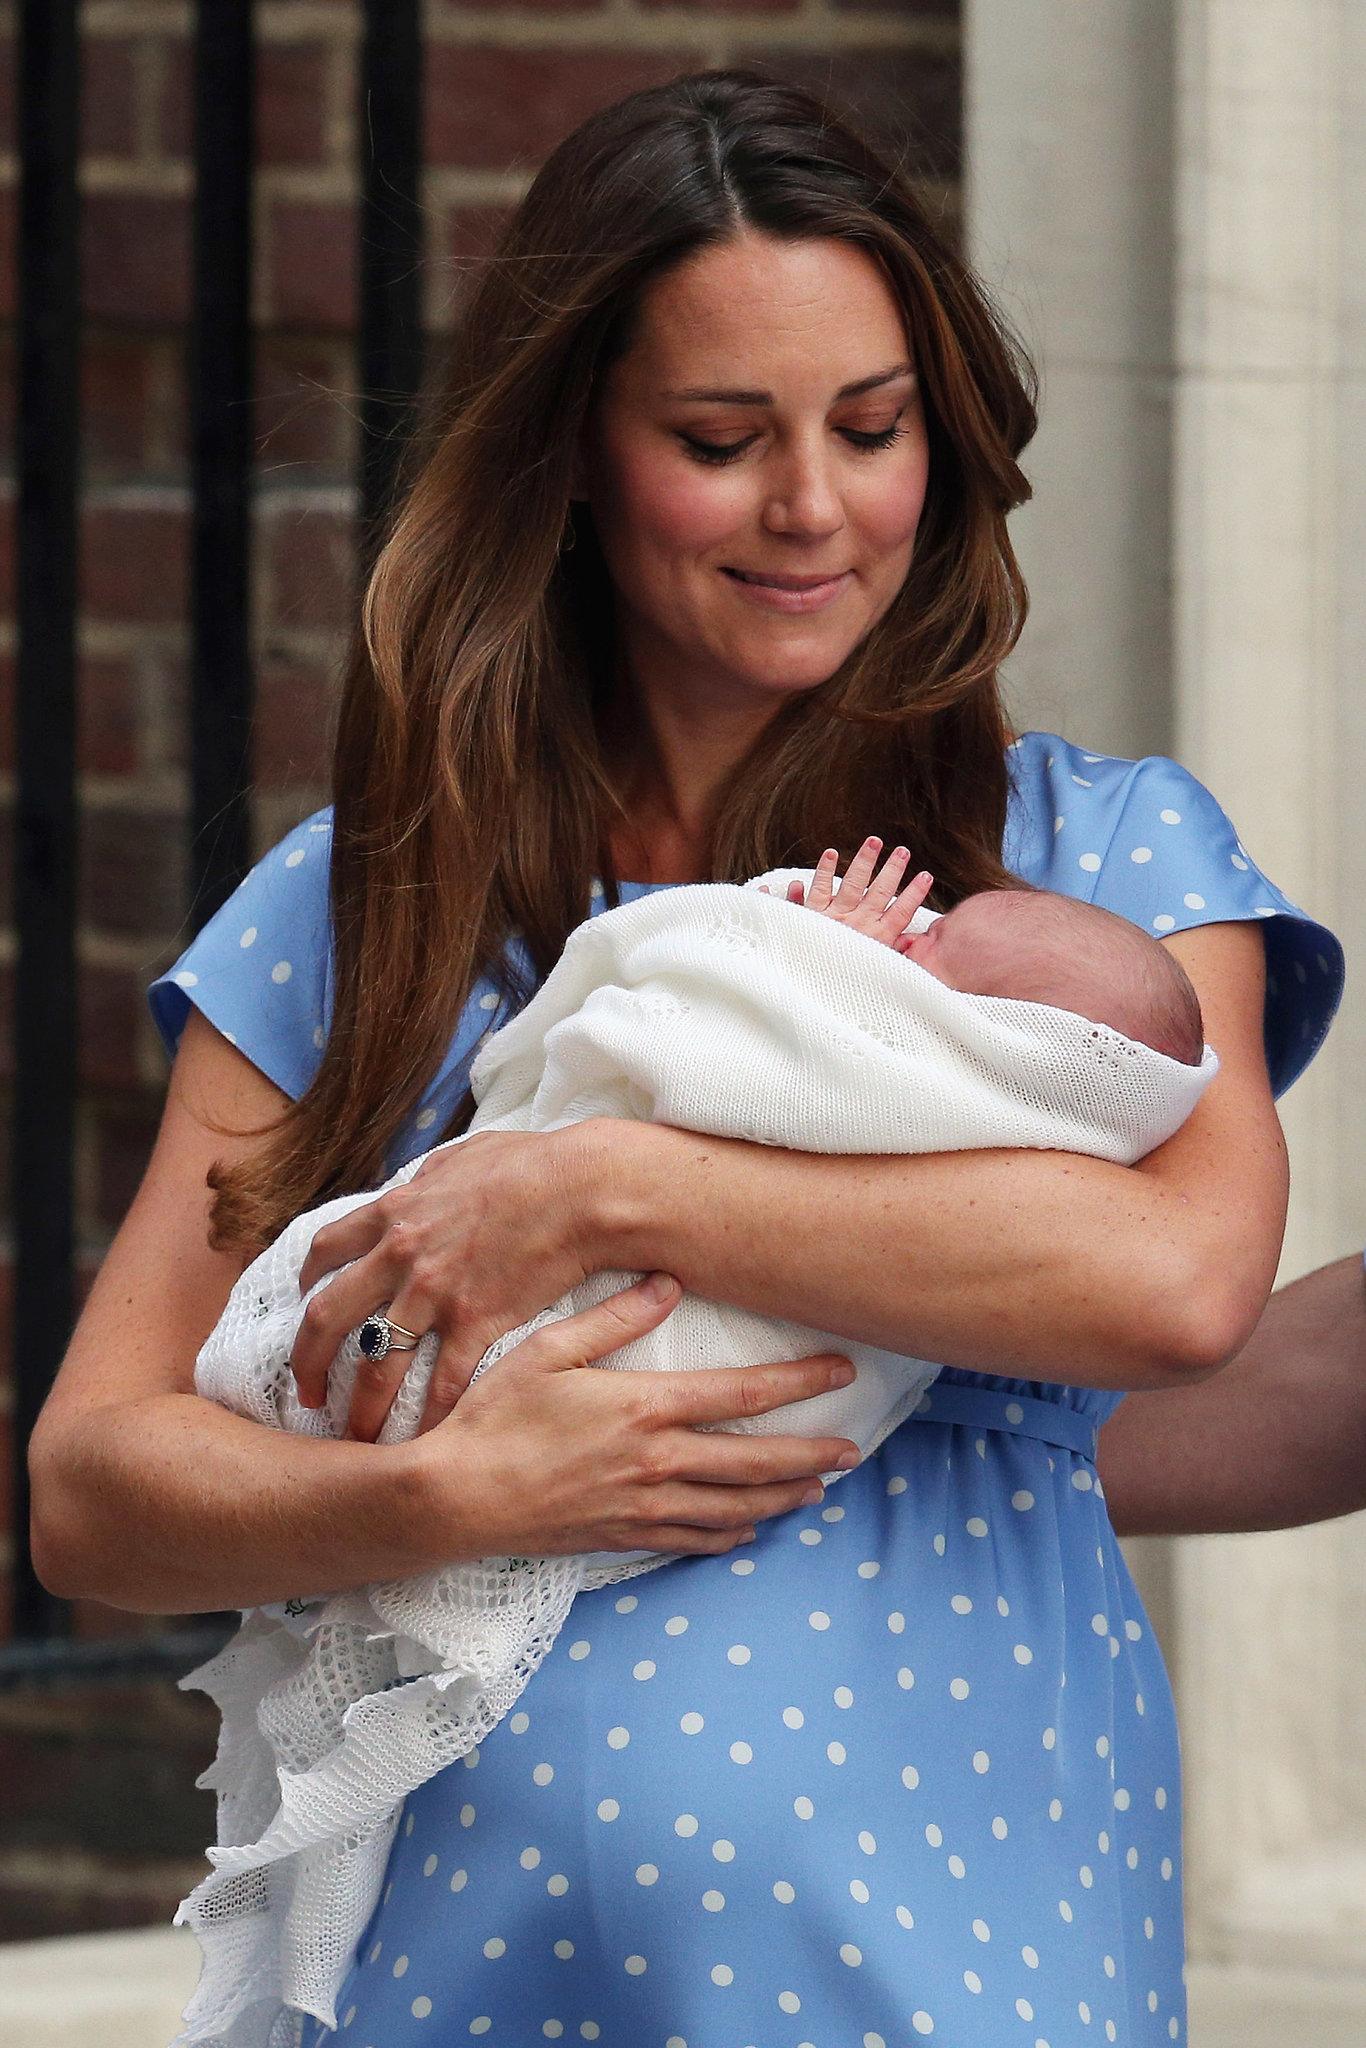 26 of Prince George and Kate Middleton's Sweetest Snaps